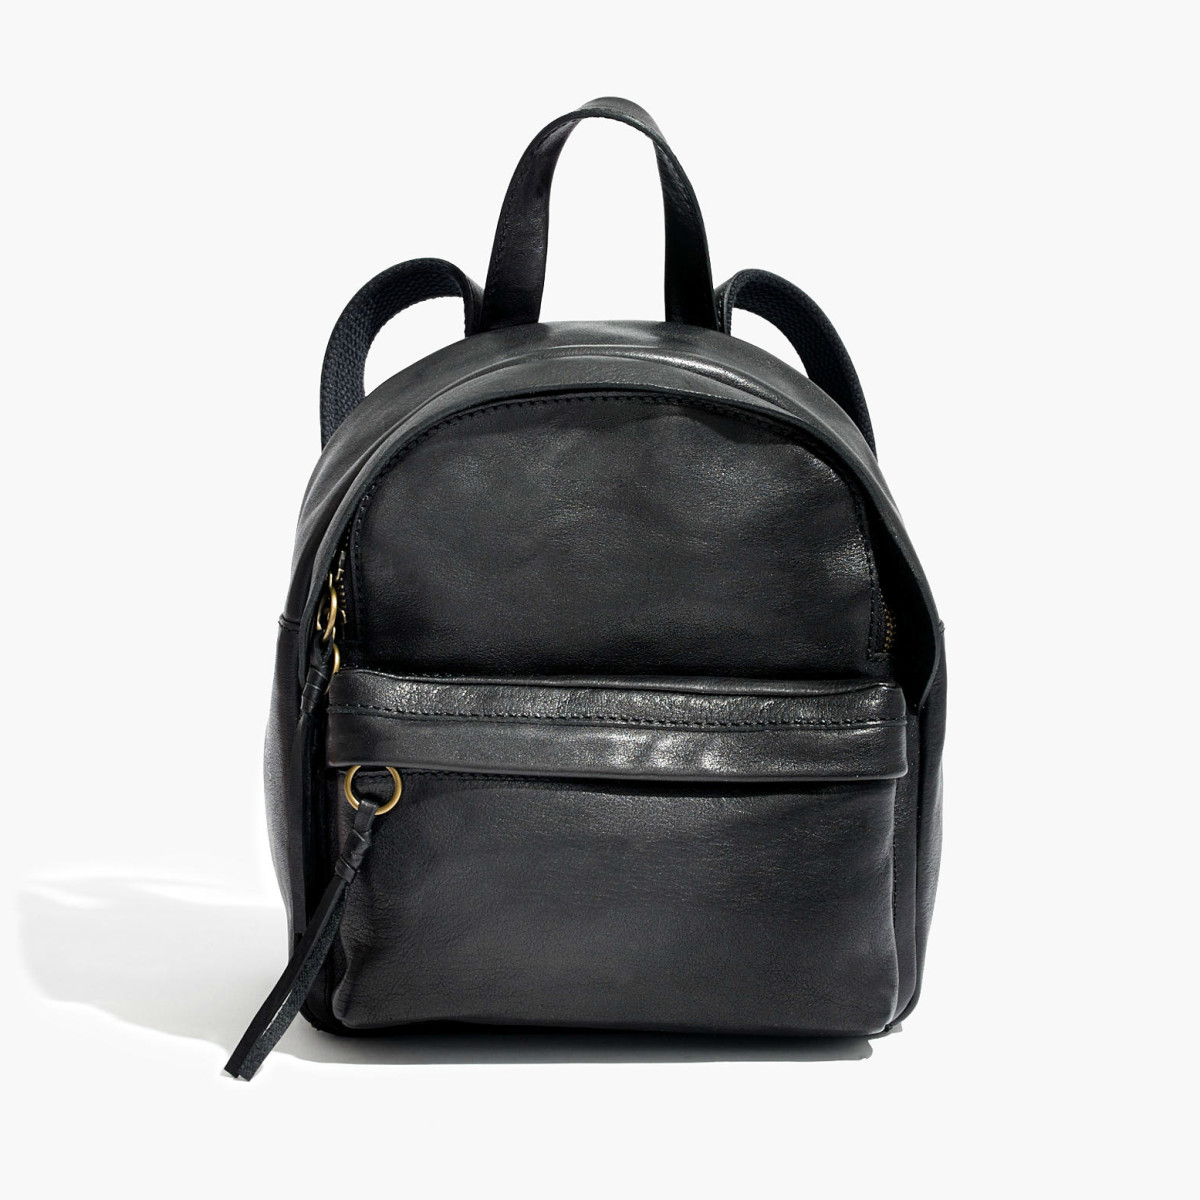 Madewell The Lorimer Mini Backpack, $158, available at Madewell.